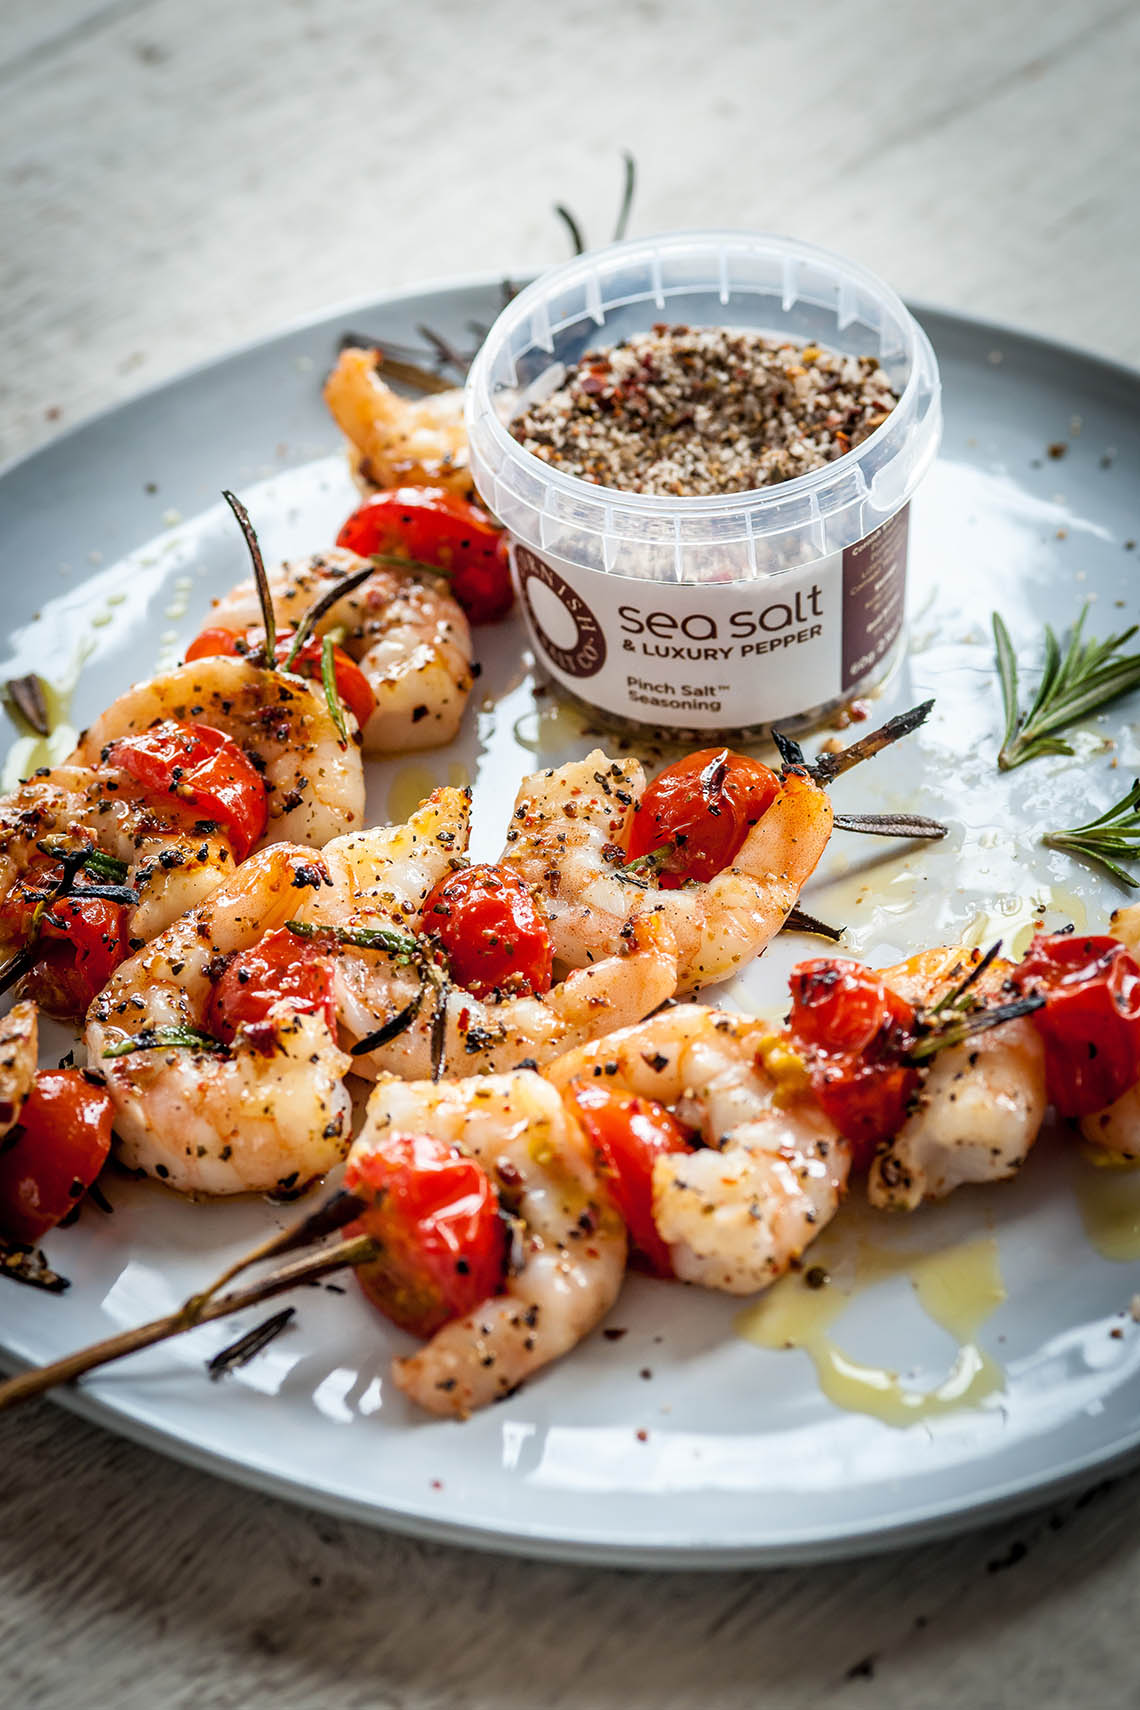 Sea Salt & Pepper Tiger Prawns on Rosemary Skewers